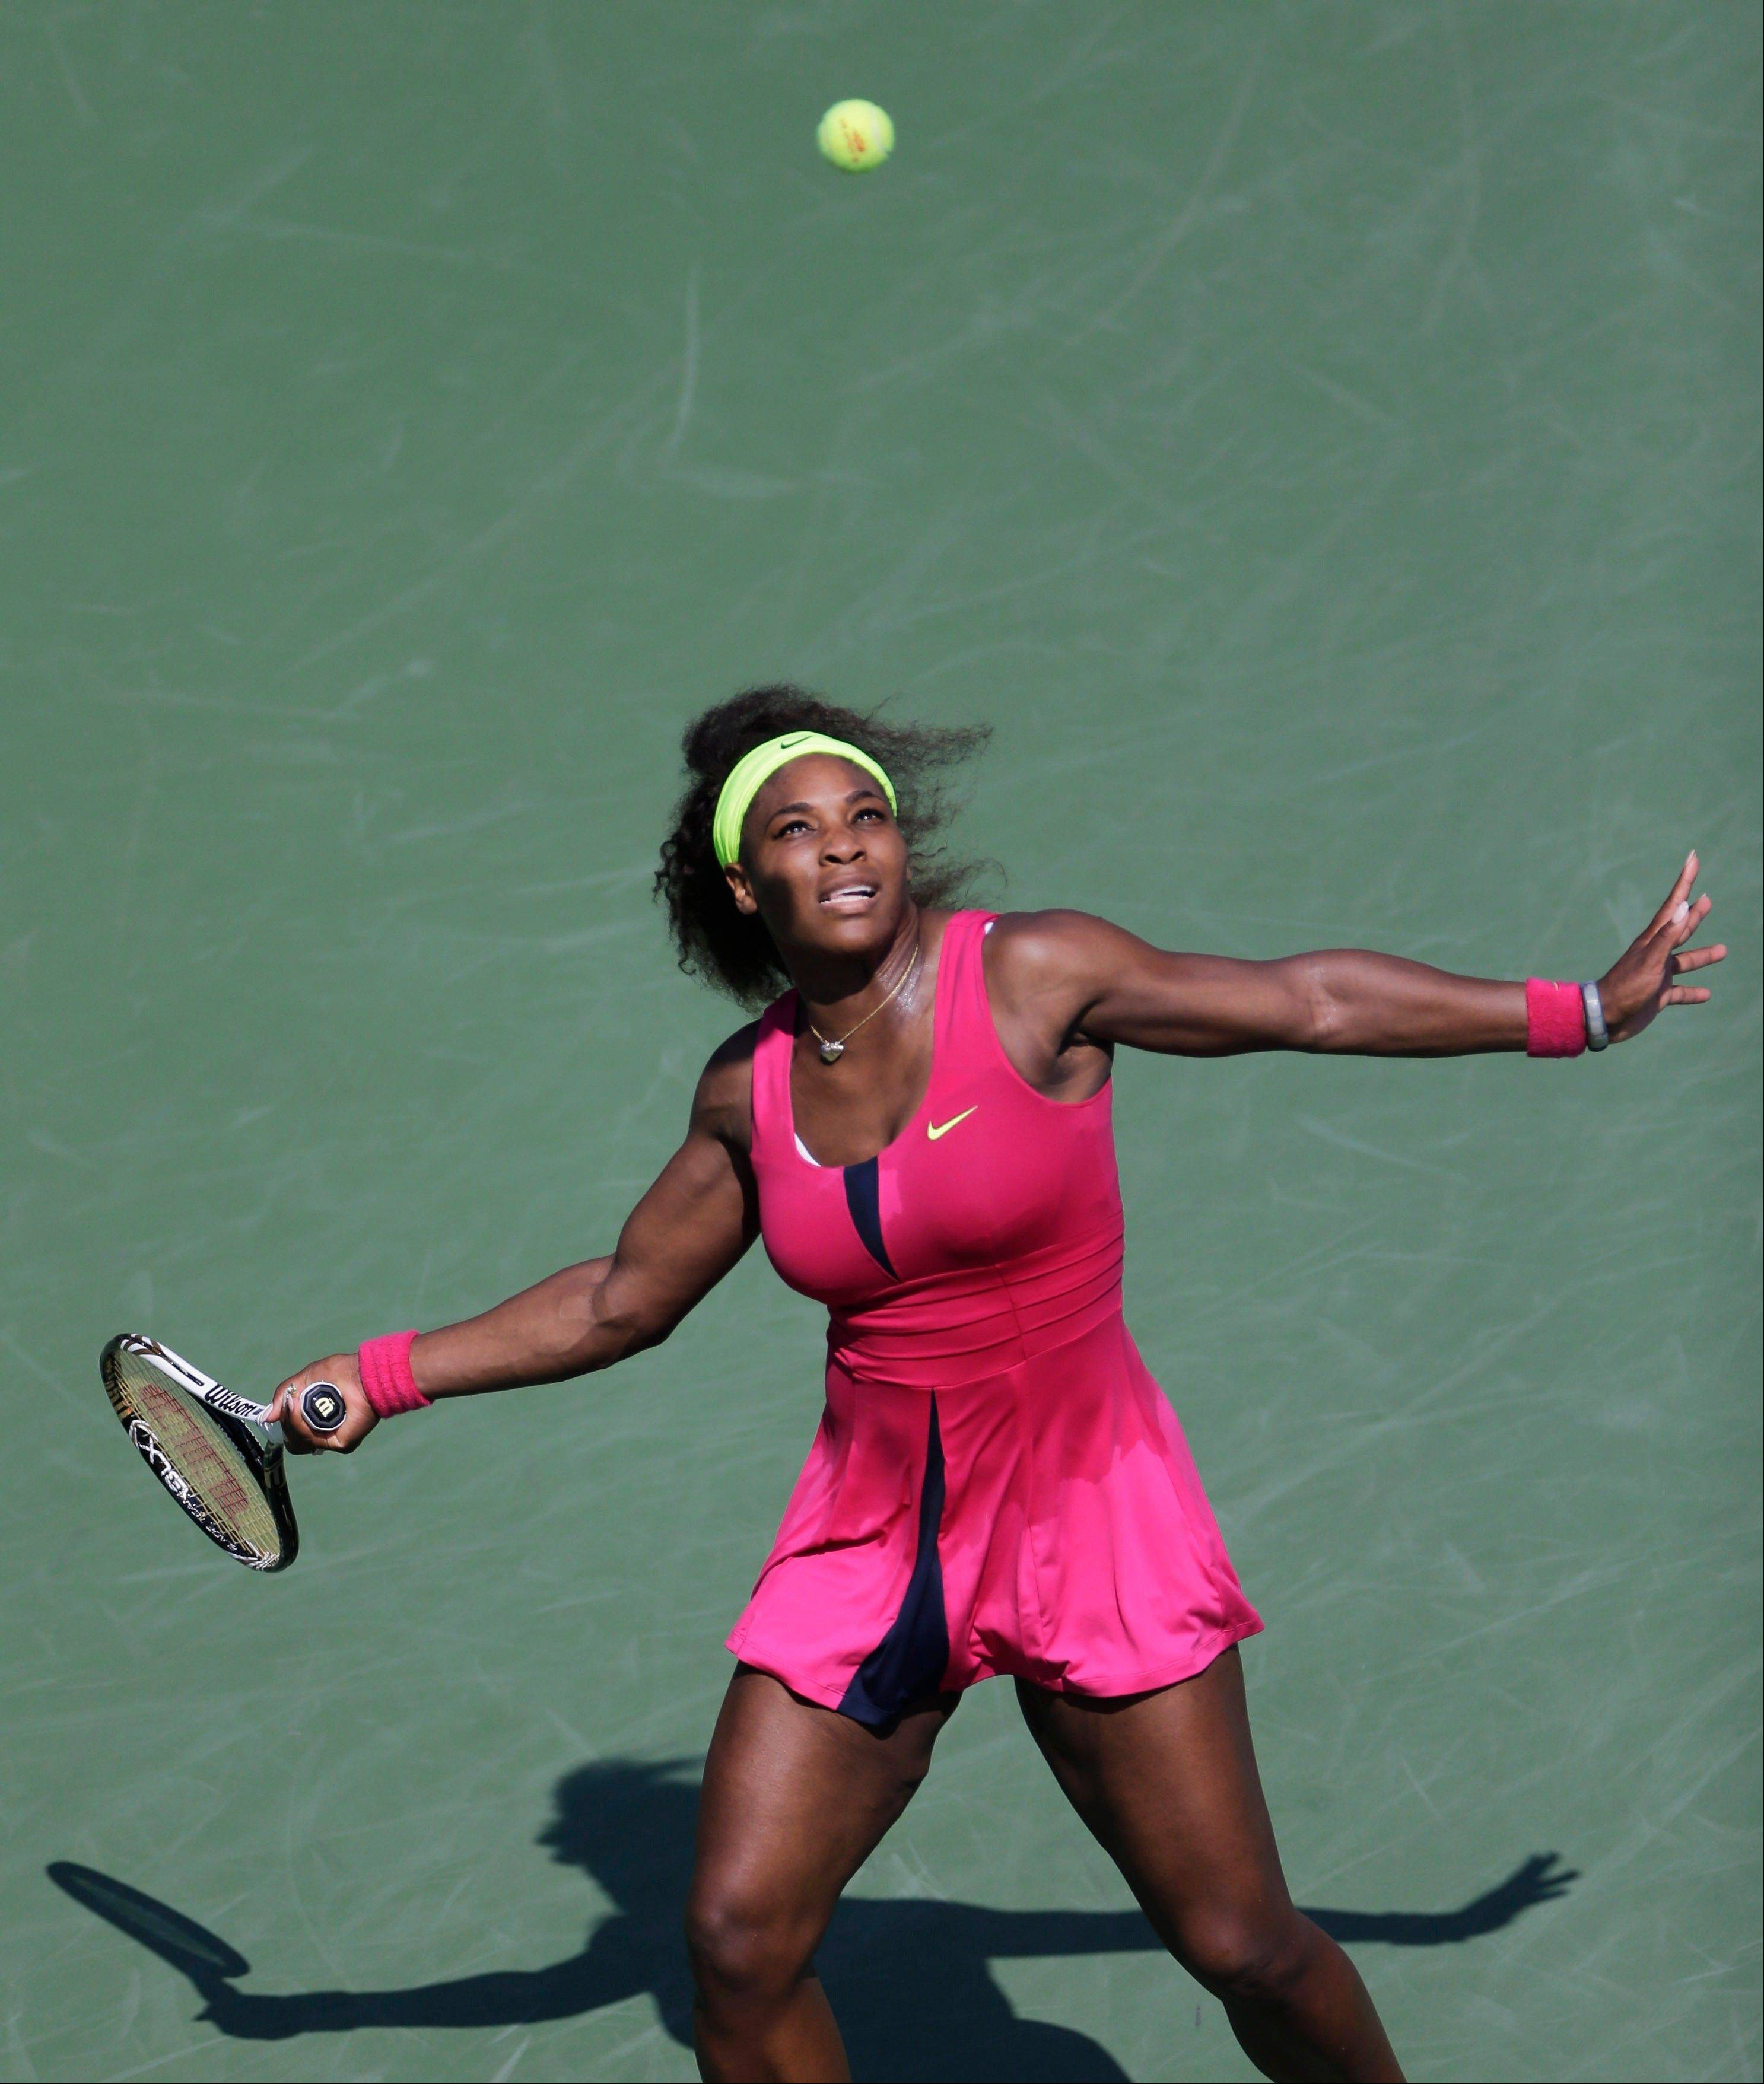 Serena Williams returns a shot to Russia's Ekaterina Makarova in the third round of play at the 2012 US Open tennis tournament, Saturday, Sept. 1, 2012, in New York. (AP Photo/Mike Groll)